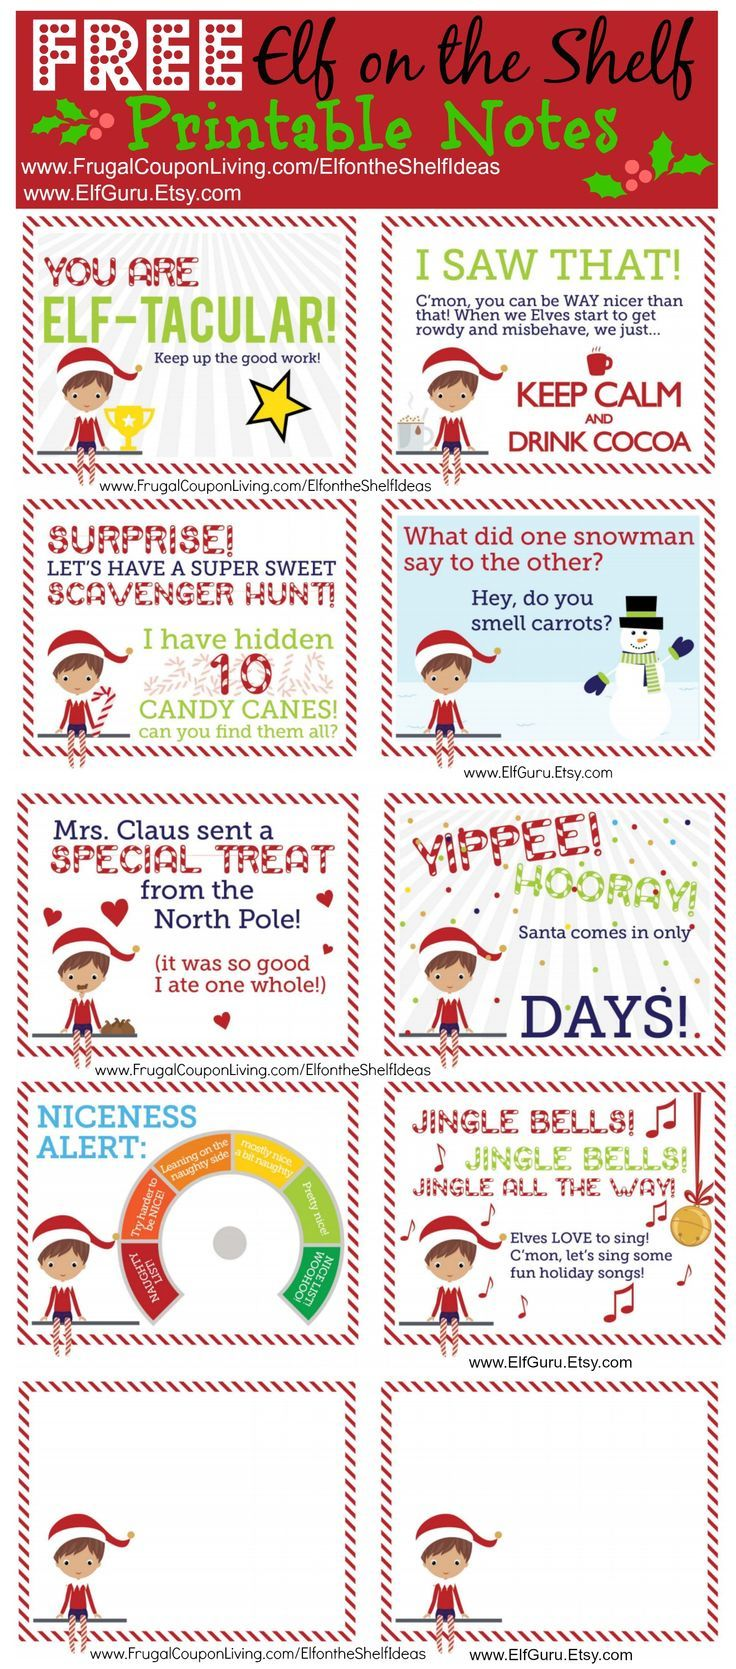 FREE Elf on the Shelf Notes and daily Elf on the Shelf Ideas on Frugal Coupon Living. 100s of creative, easy, and funny elf ideas.